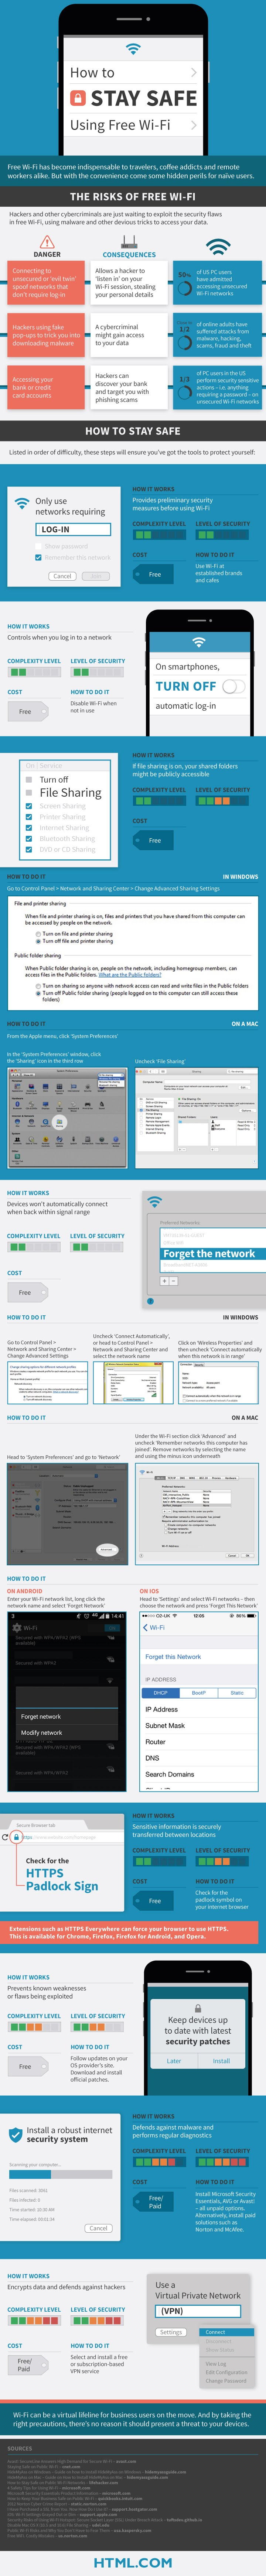 How to Stay Safe Using Free Wi-Fi - #infographic